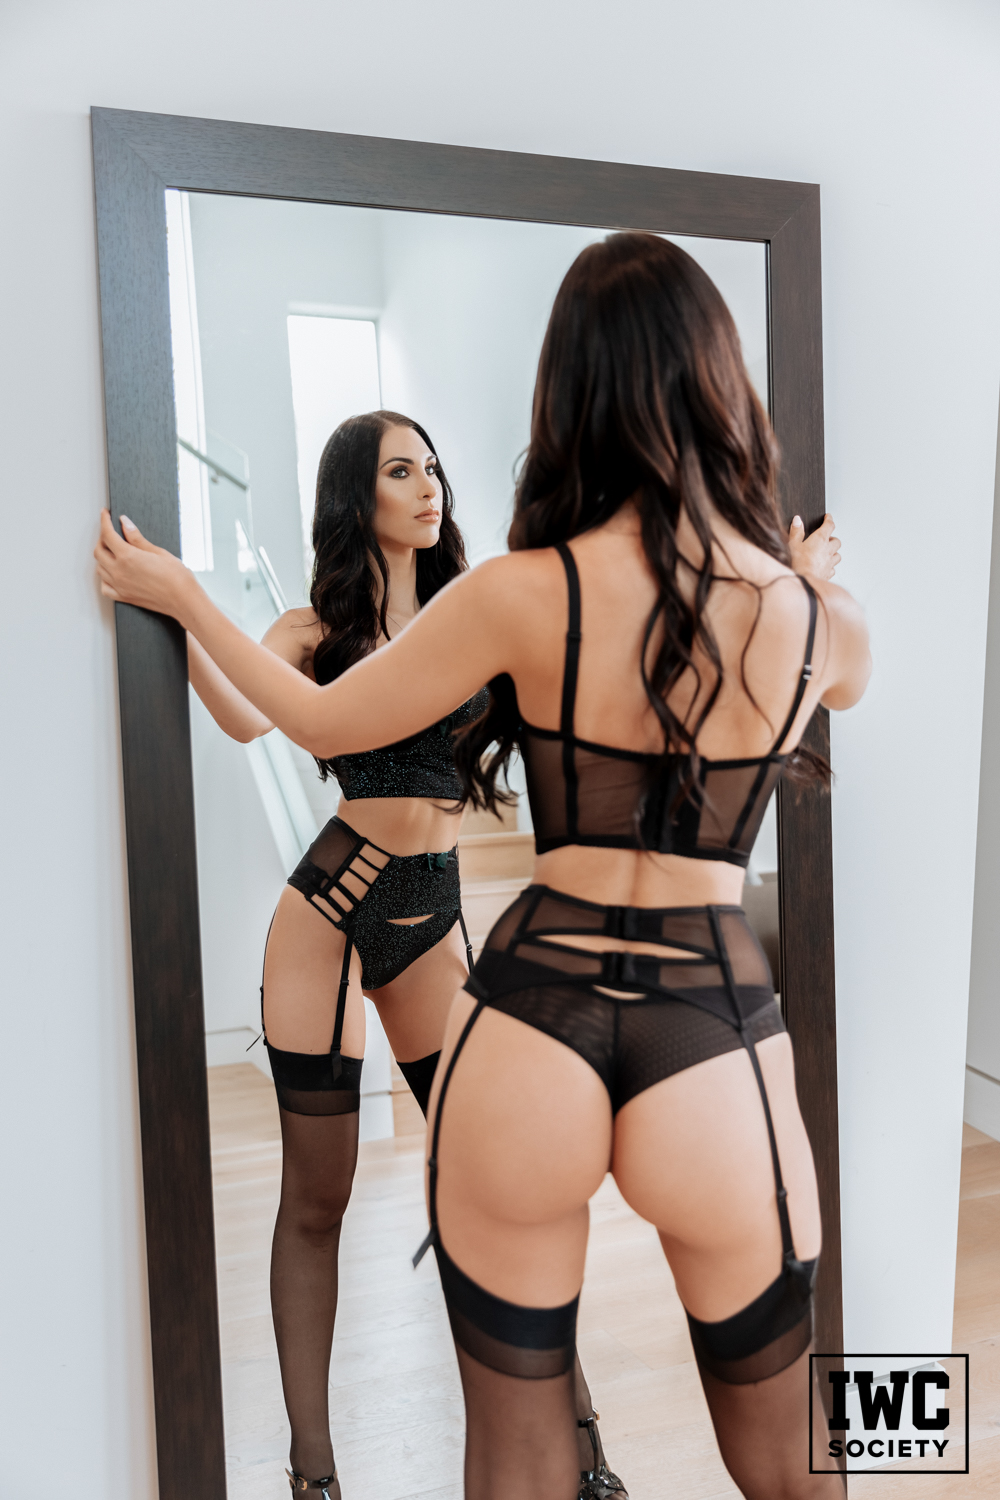 dominatrix in mesh lingerie with stockings in mirror